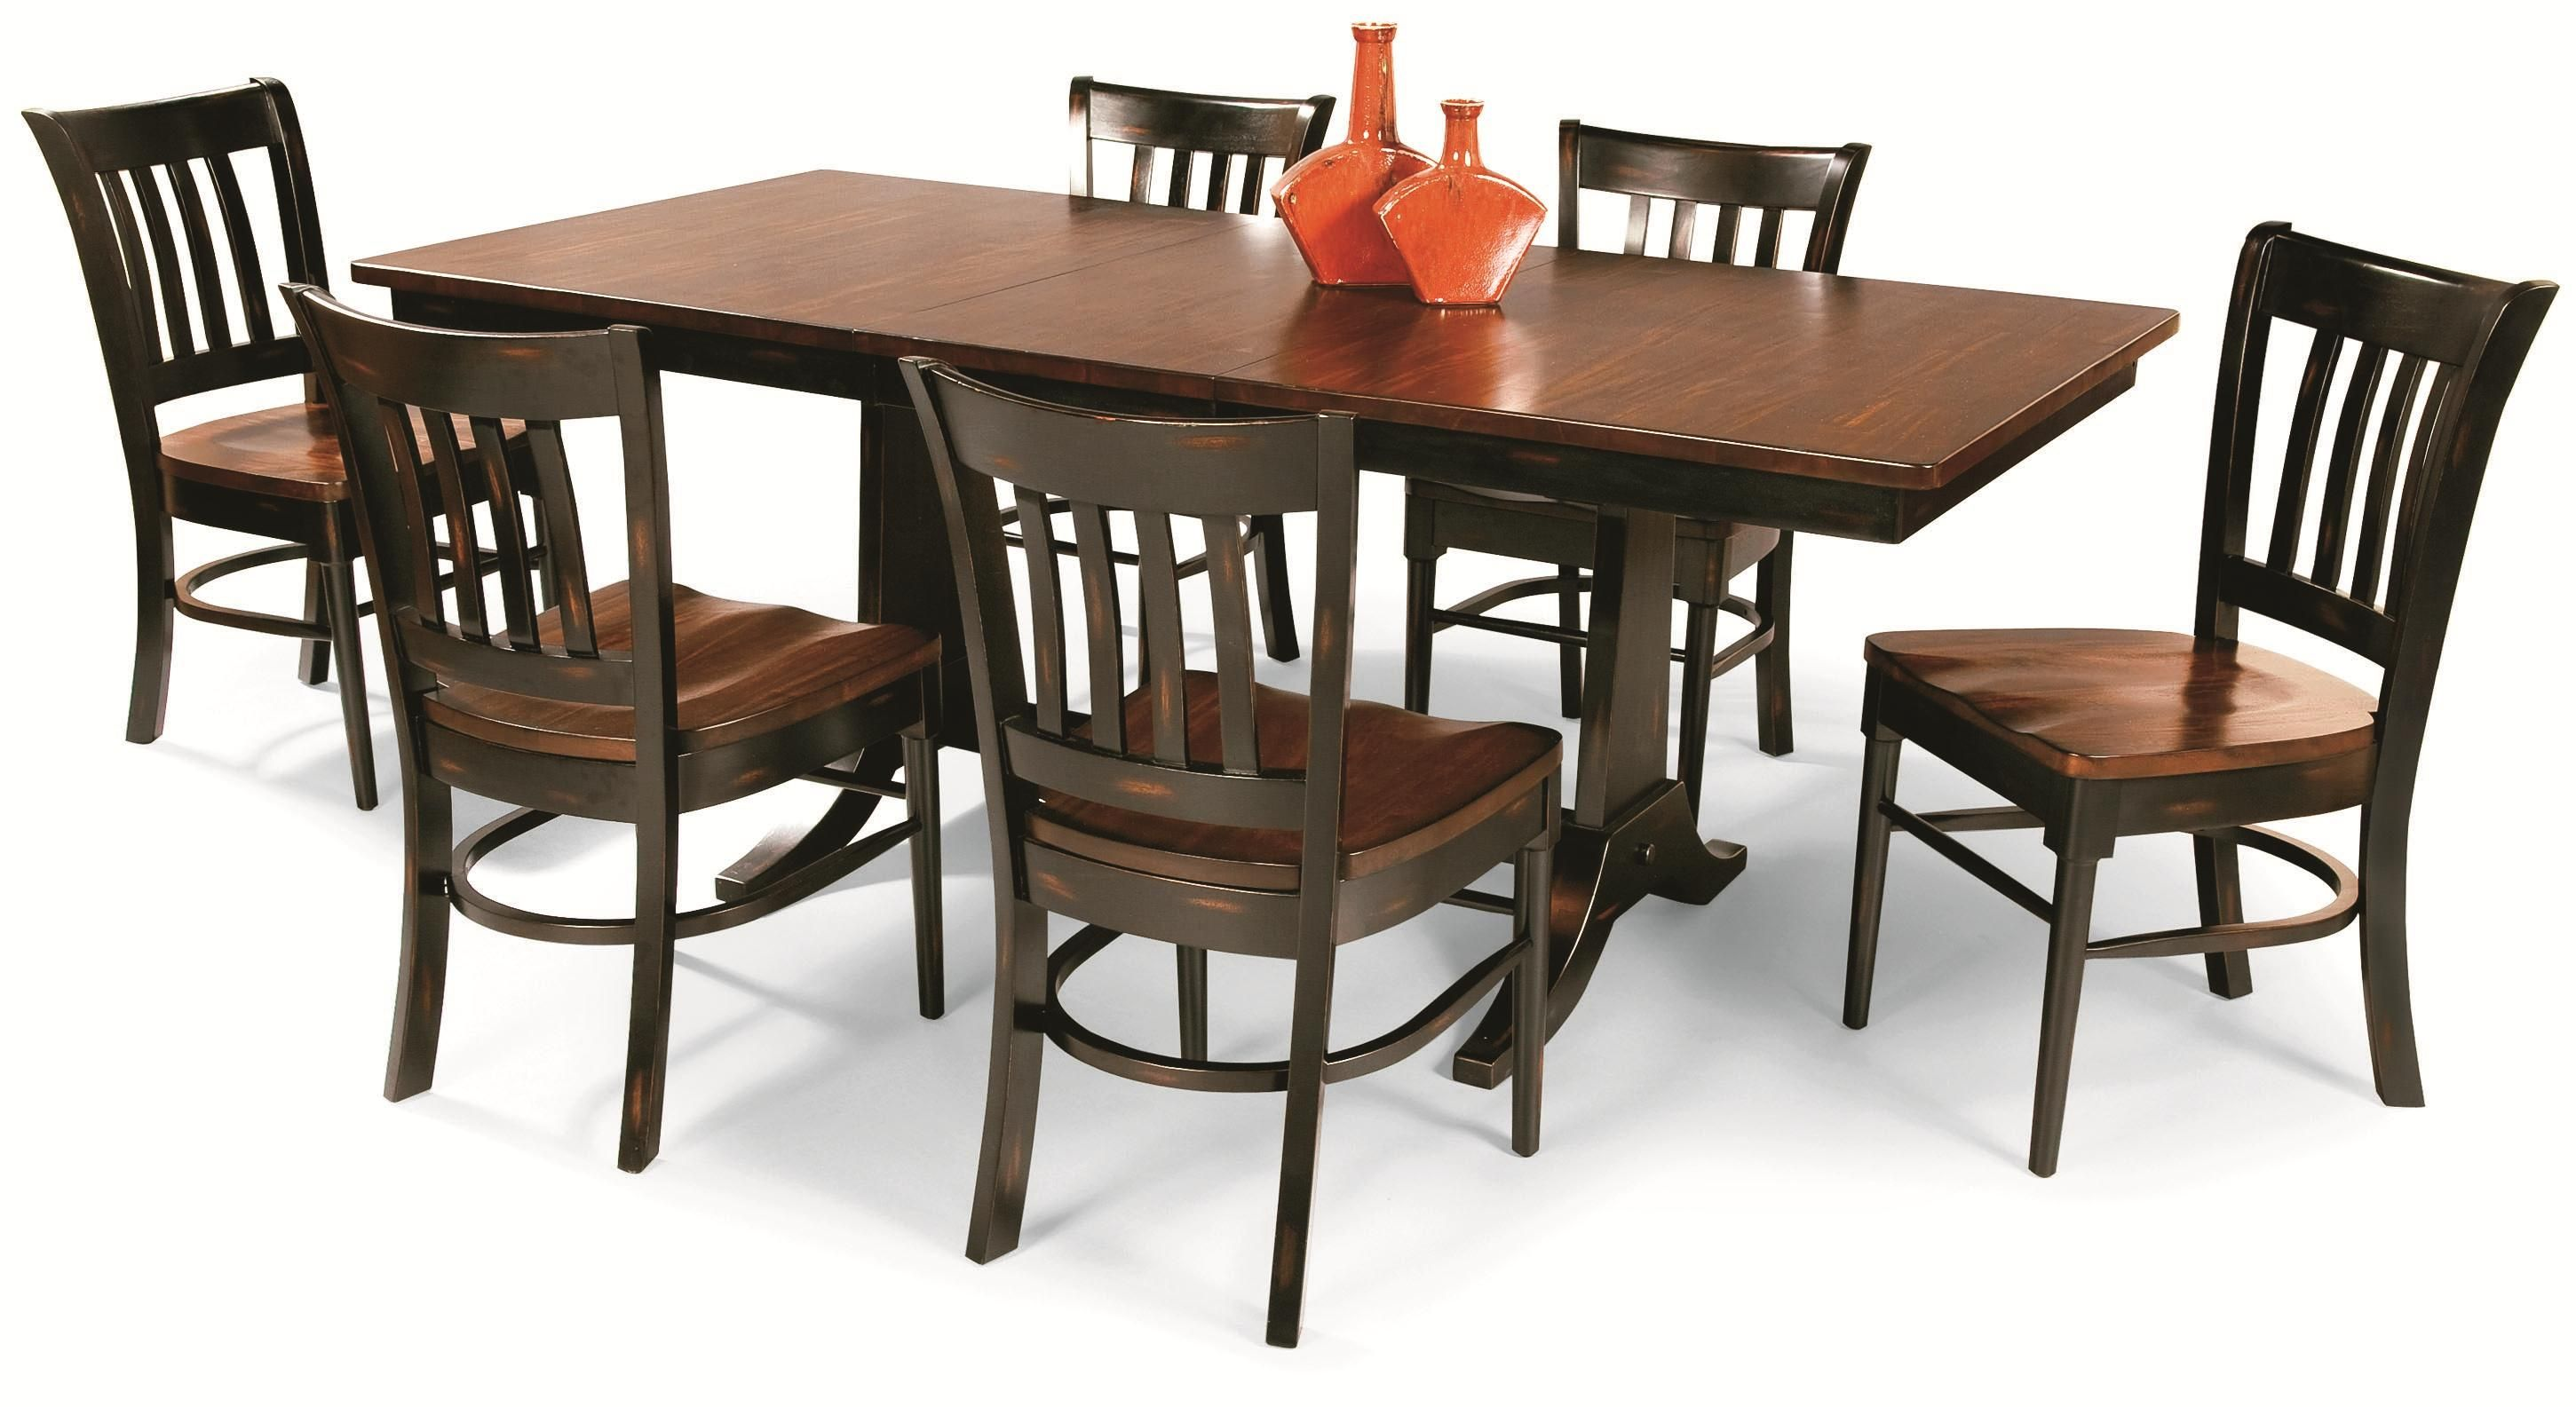 Uptown: Solid Mahogany 7 Piece Trestle Table Dining Group By Cochrane